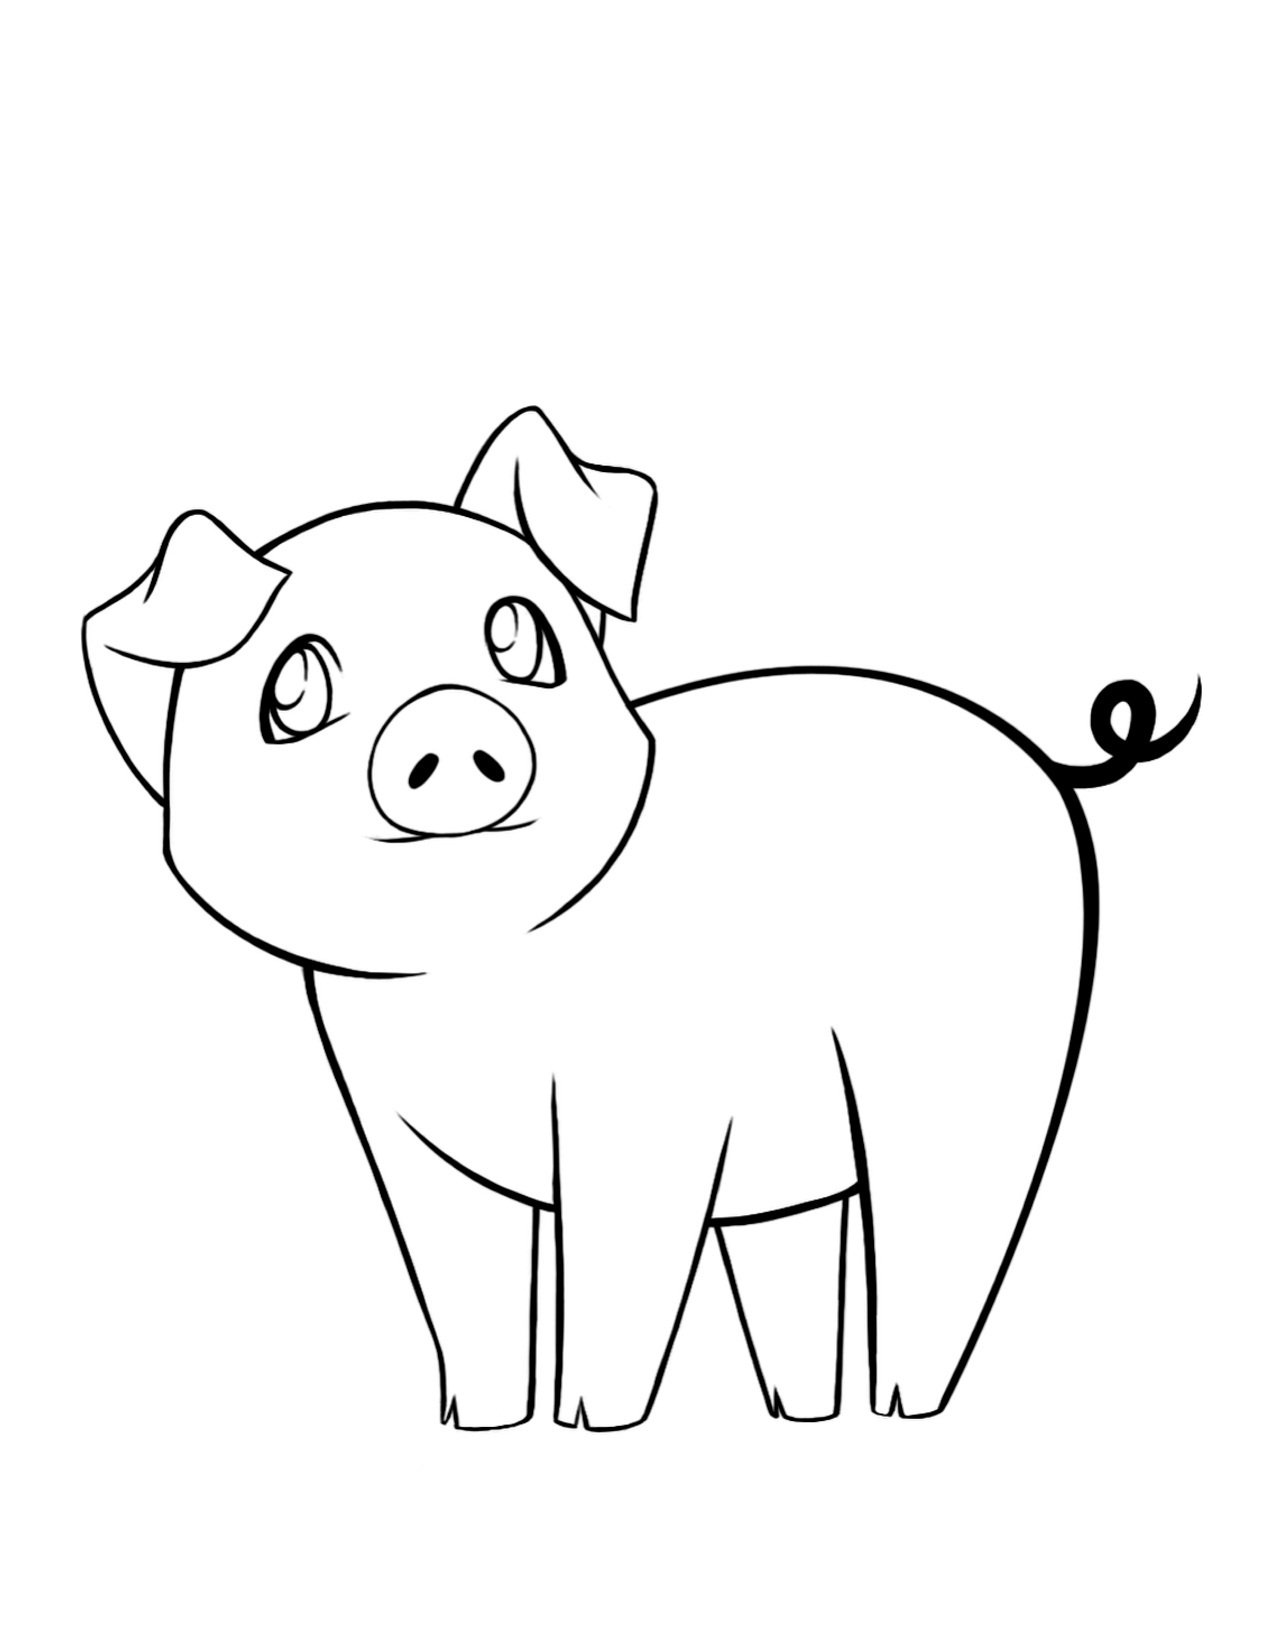 coloring page of pig free printable pig coloring pages for kids page pig of coloring